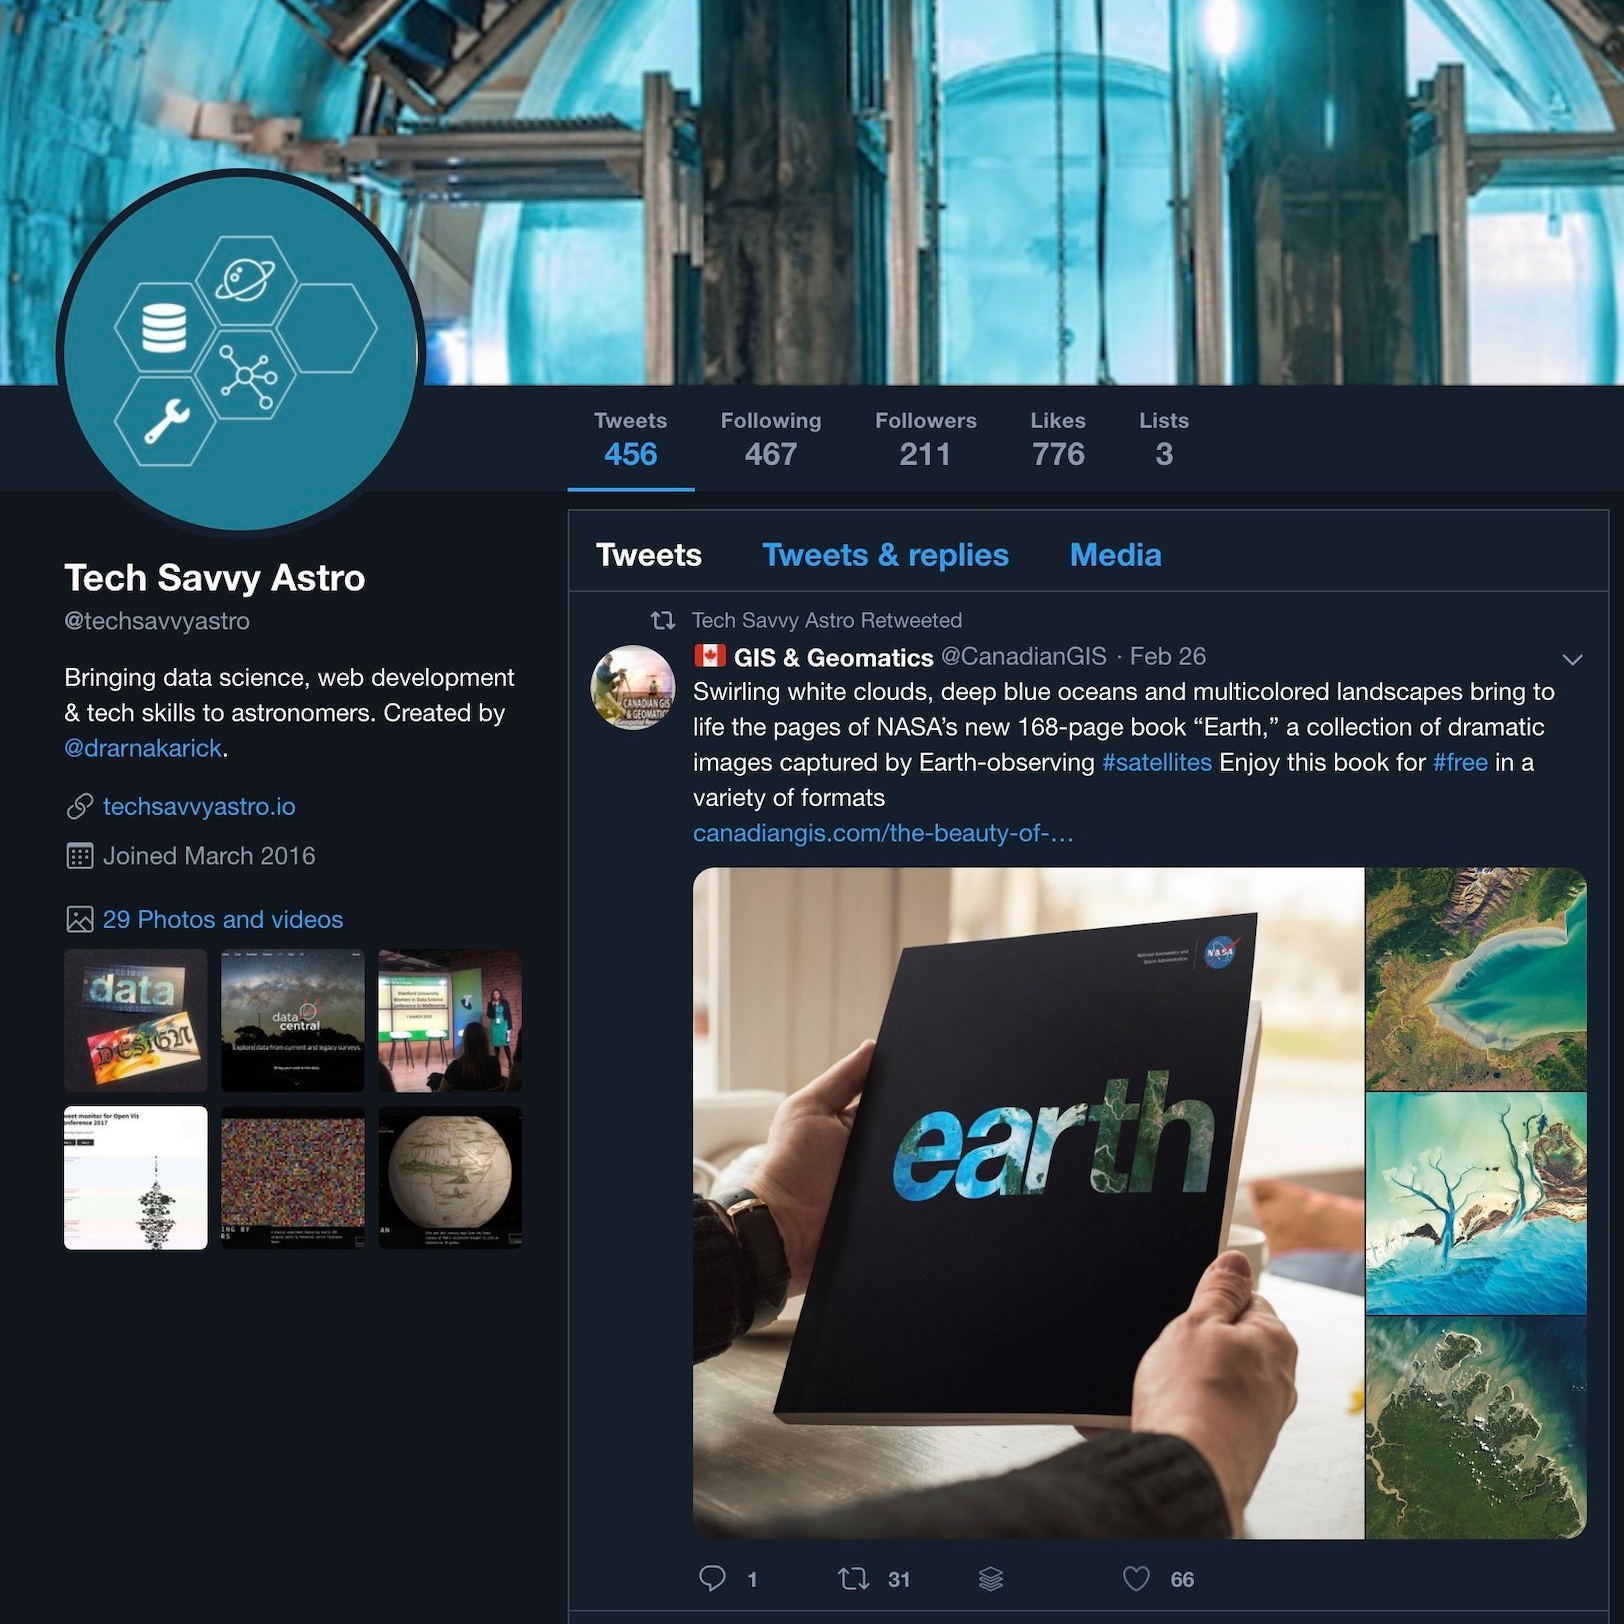 The  @techsavvyastro  Twitter feed also includes several lists; ex-astronomers now working in the tech industry, a selection of clever and quirky Twitterbots created by the  .Astronomy  ( @dotastronomy ) community, and astronomers building software applications and tools.